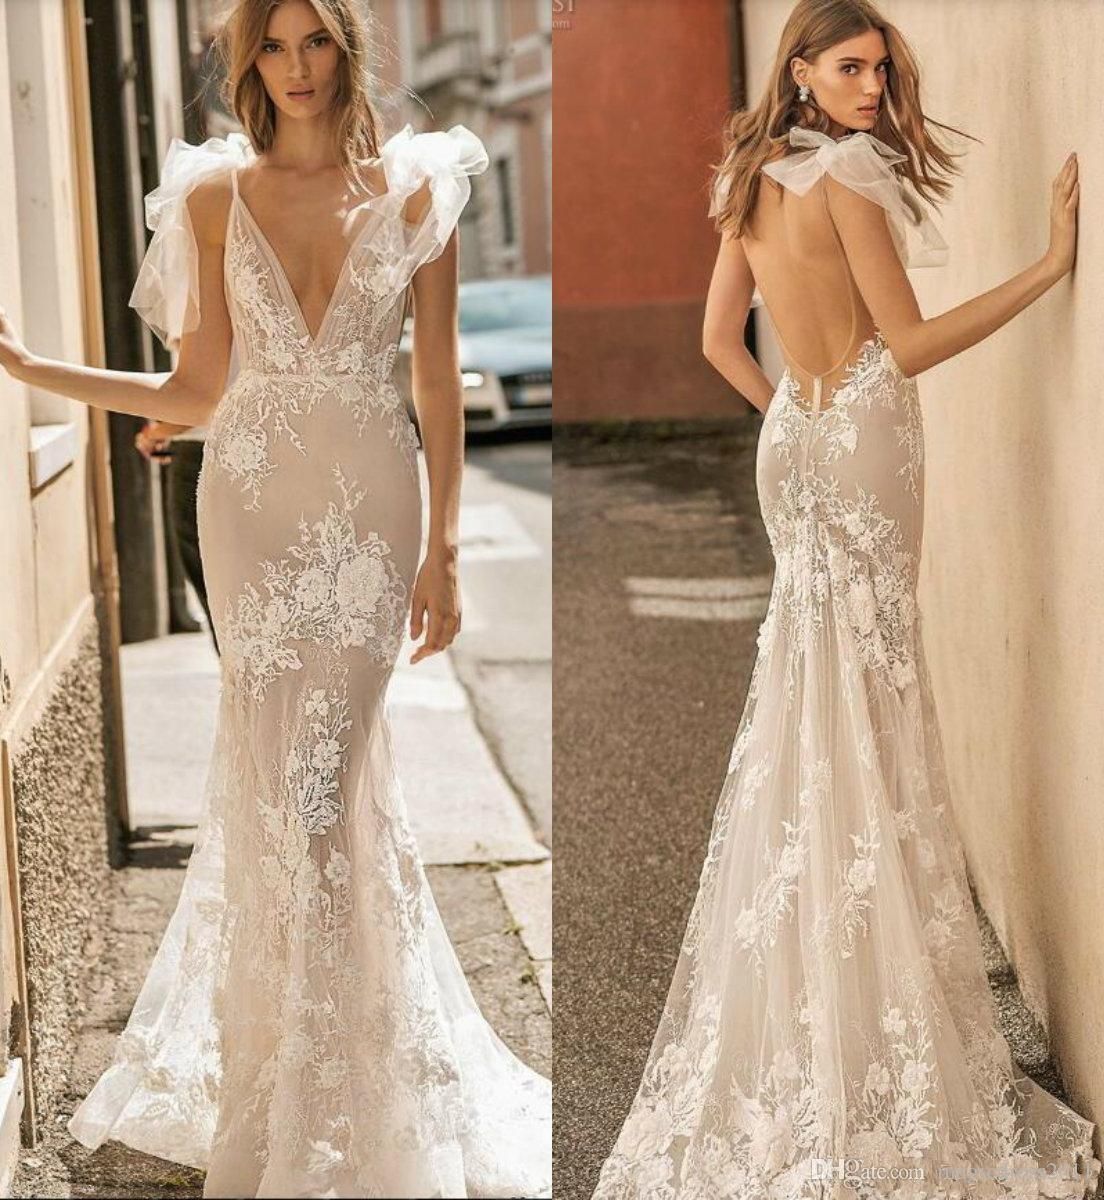 2019 Berta Wedding Dresses Deep V Neck Sexy Backless Straps Sweep Train  Modest Mermaid Wedding Dress With Lining Beach Bridal Gowns Sexy Wedding  Gowns ... 00801c56cf5a